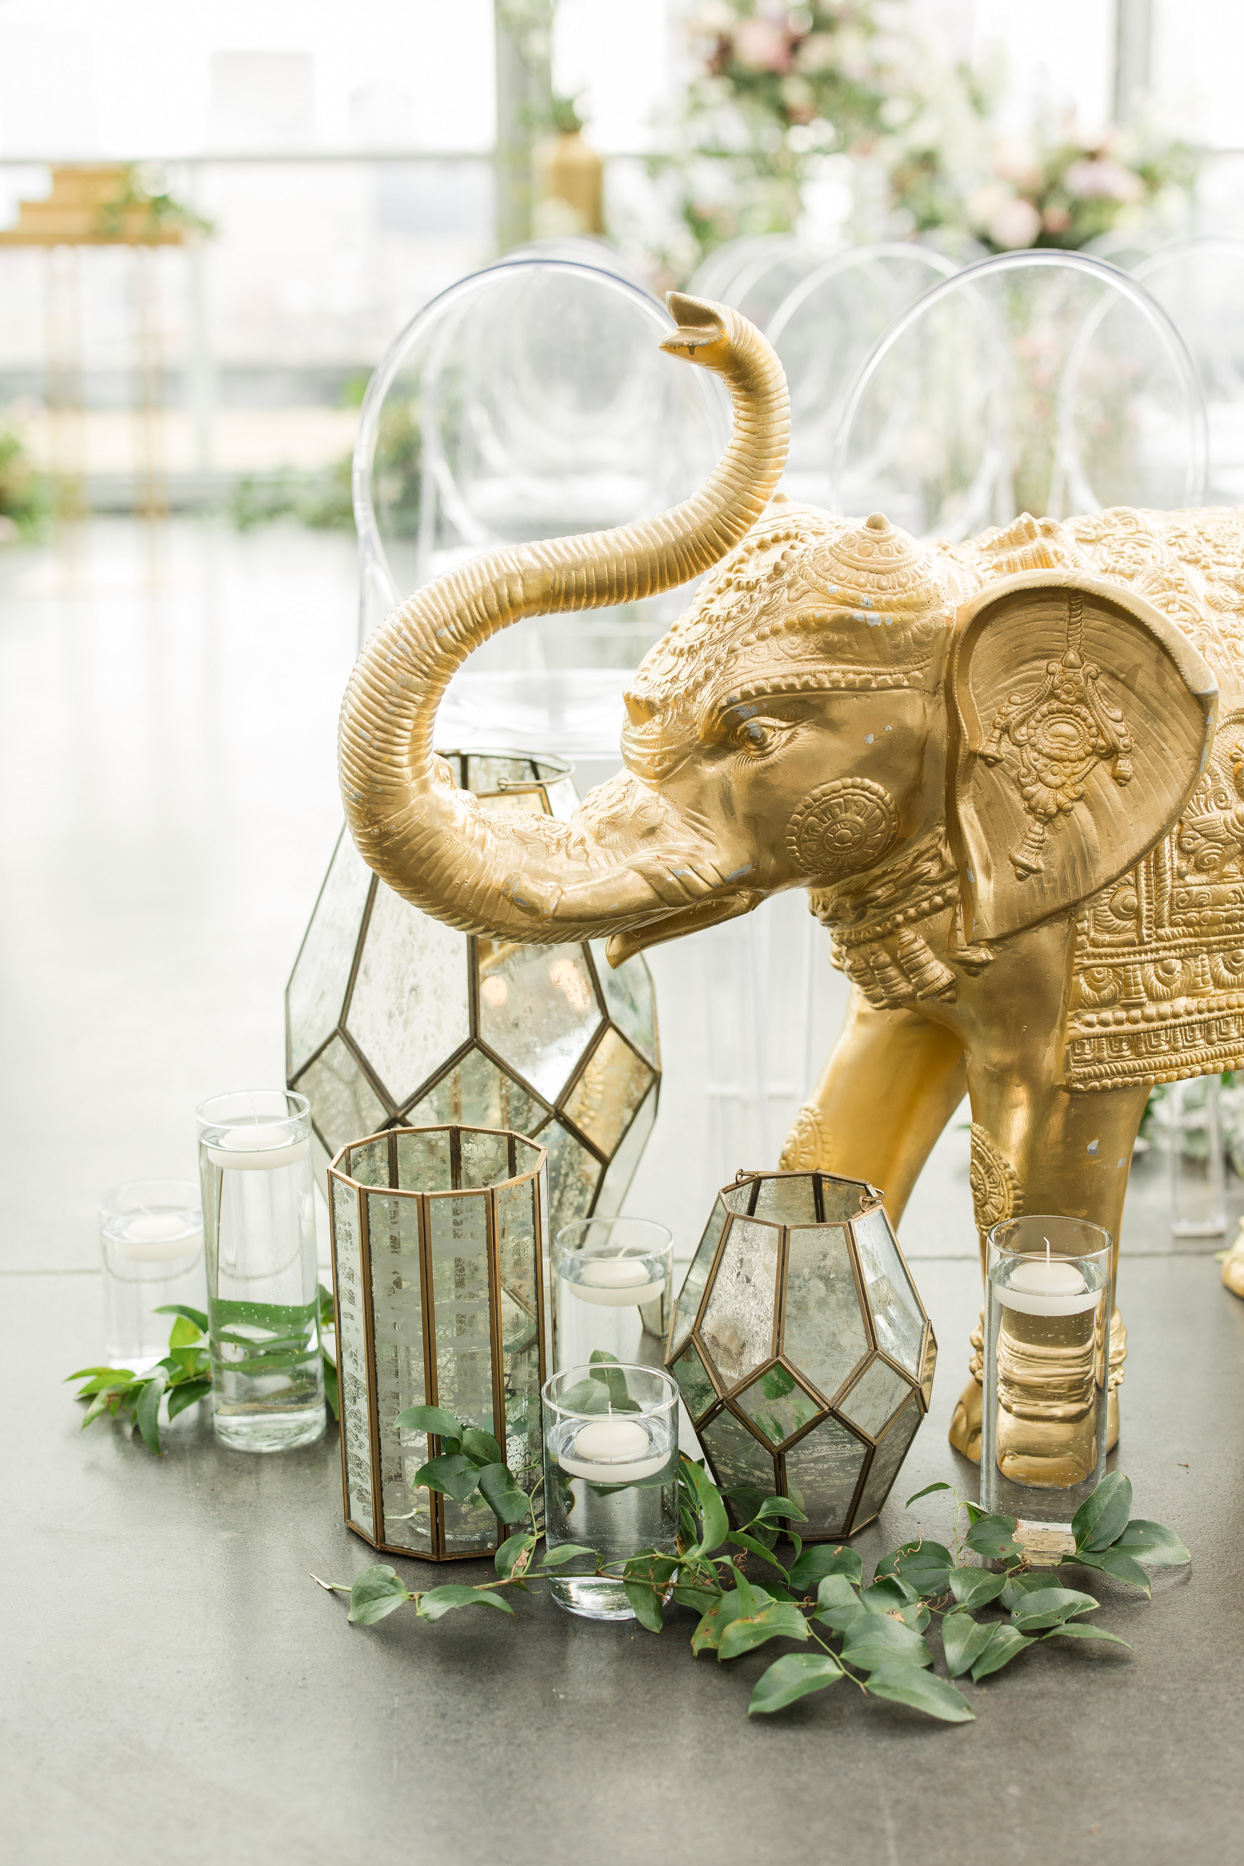 golden elephant and candle decor in wedding aisle